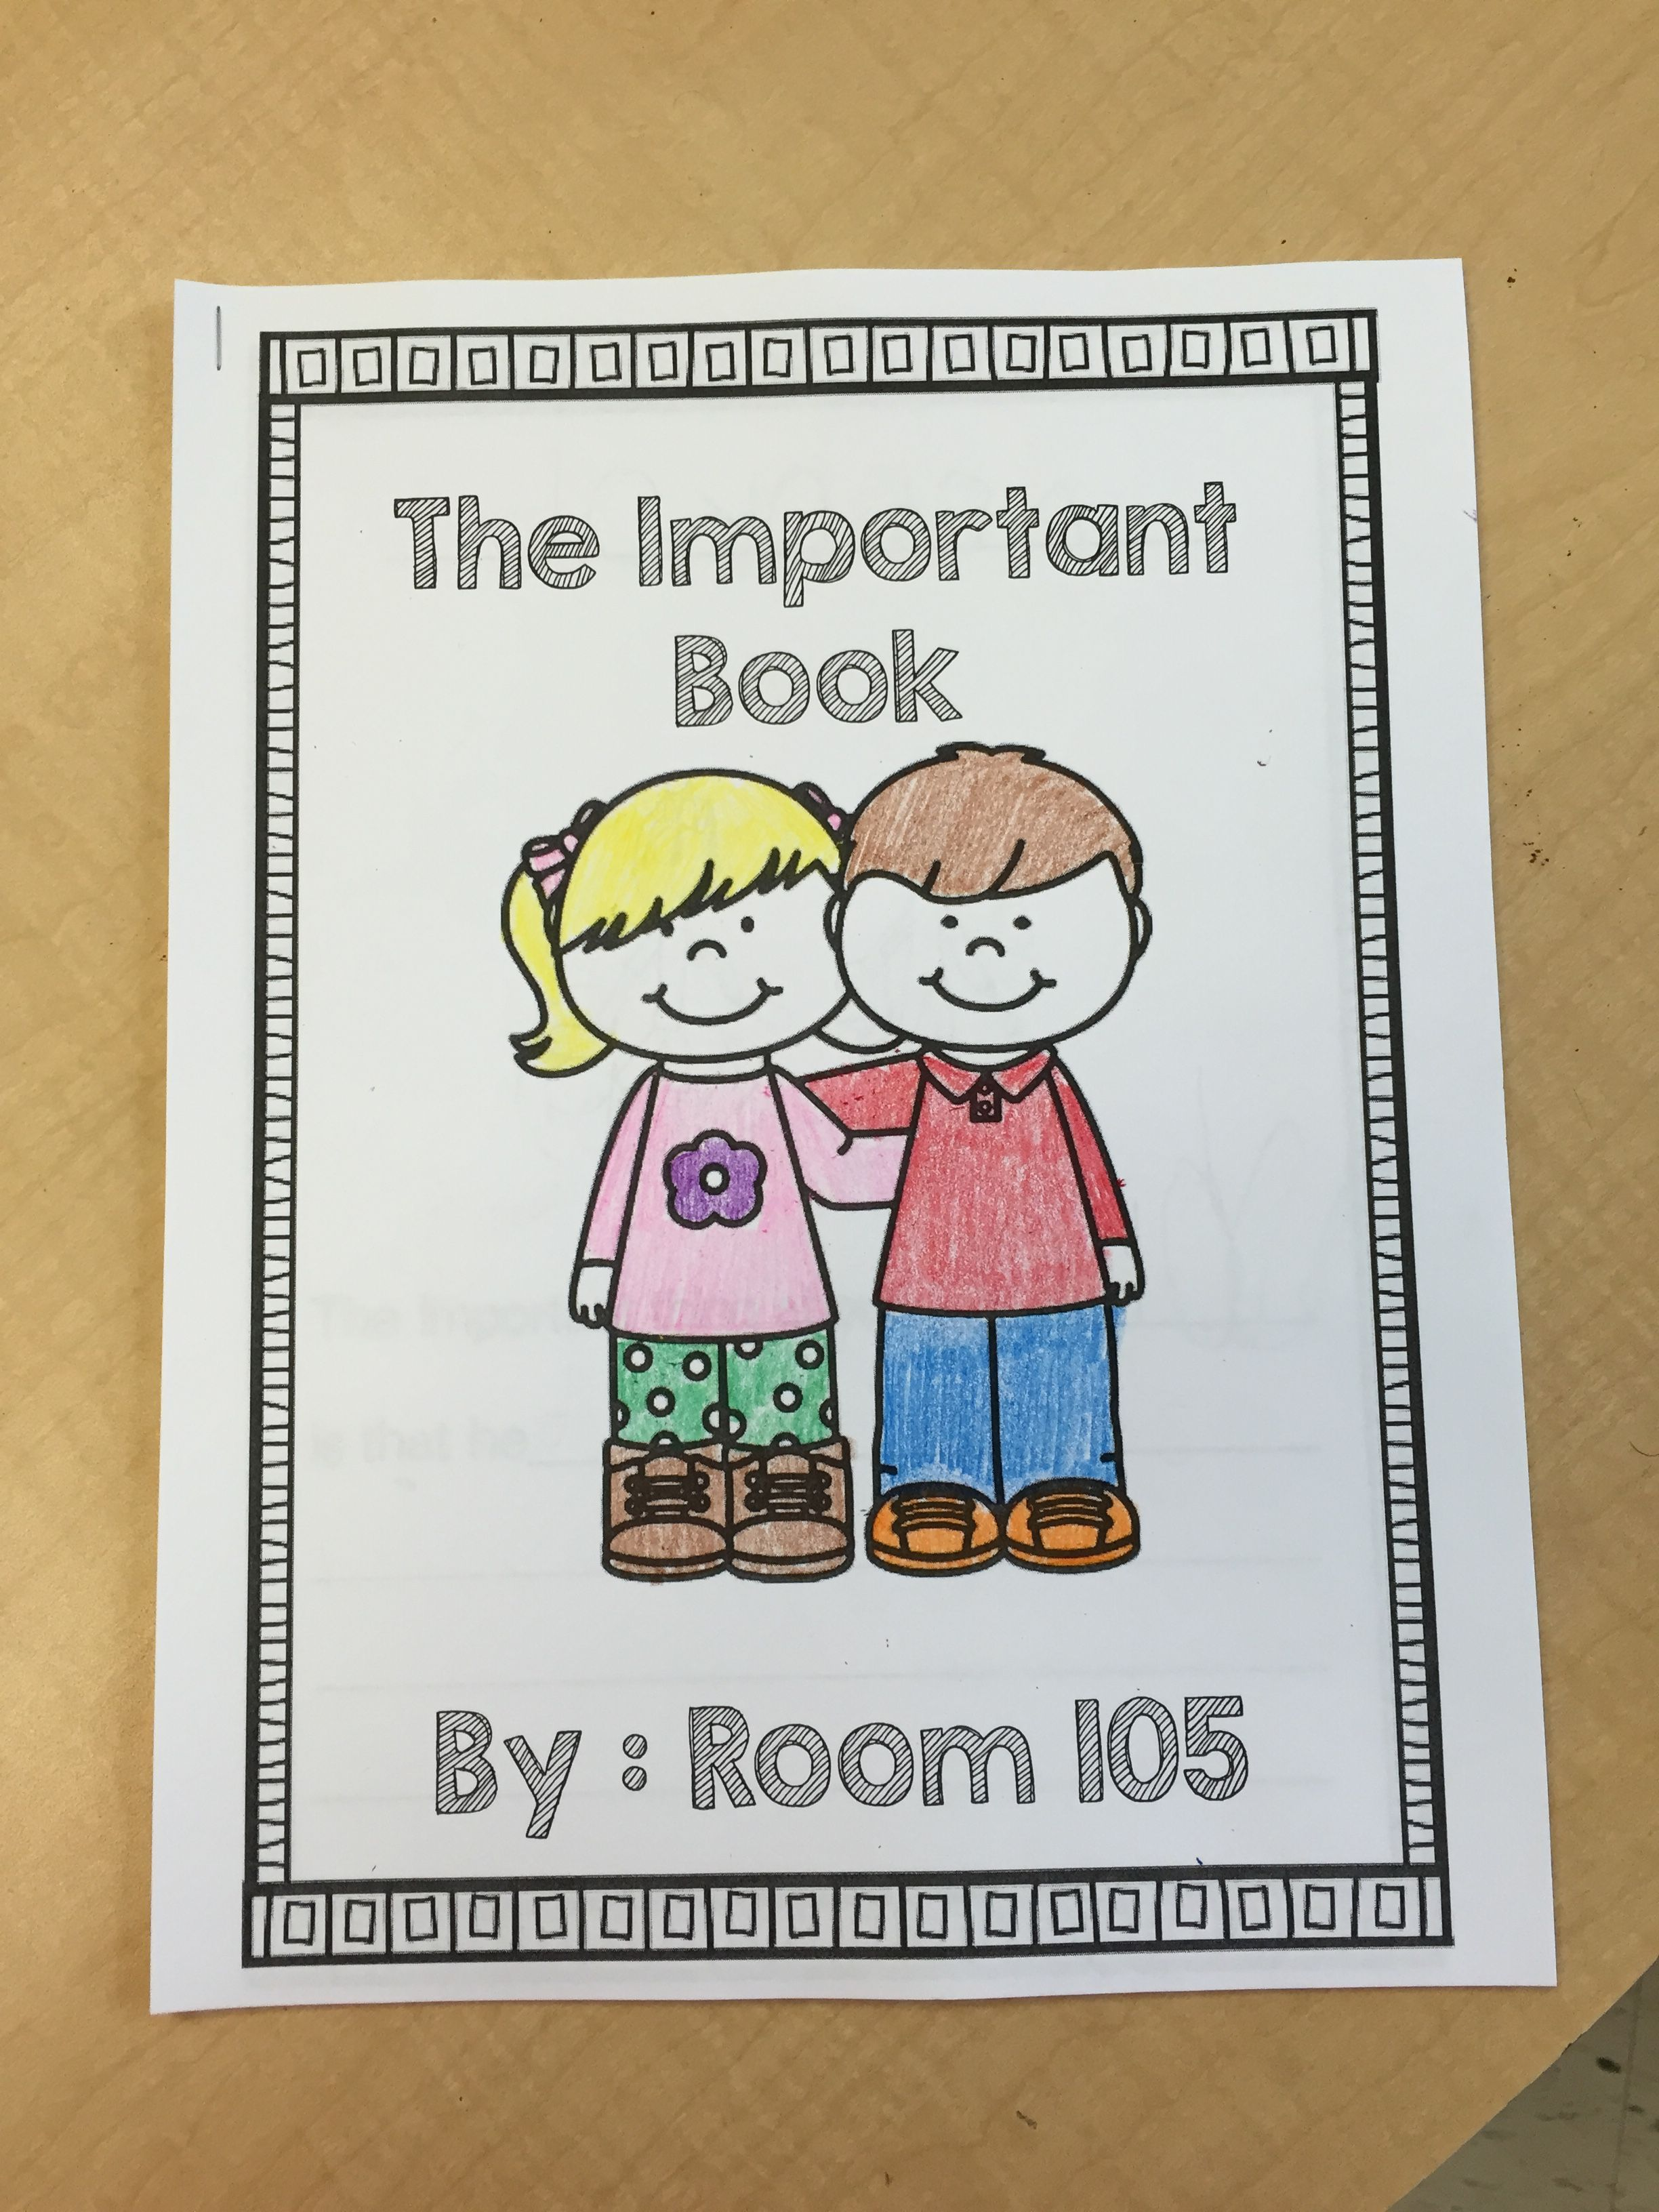 Freebie! Are you reading The Important Book in your class?  Create a class Important Book about the members of your class!